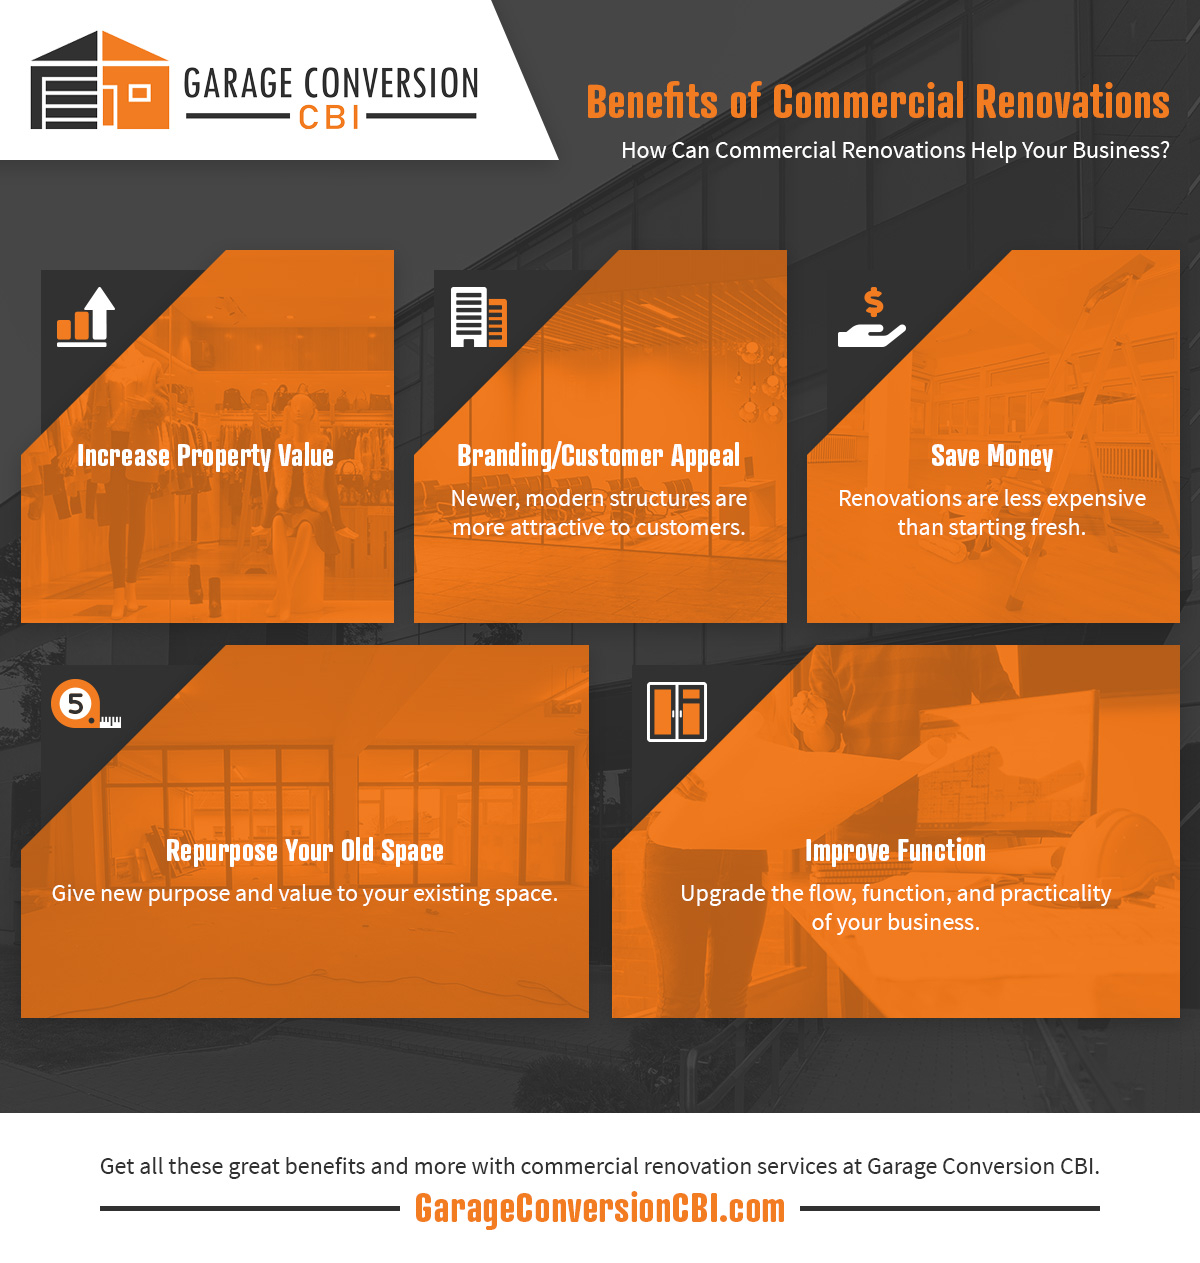 Benefits-of-Commercial-Renovations-Infographic.jpg